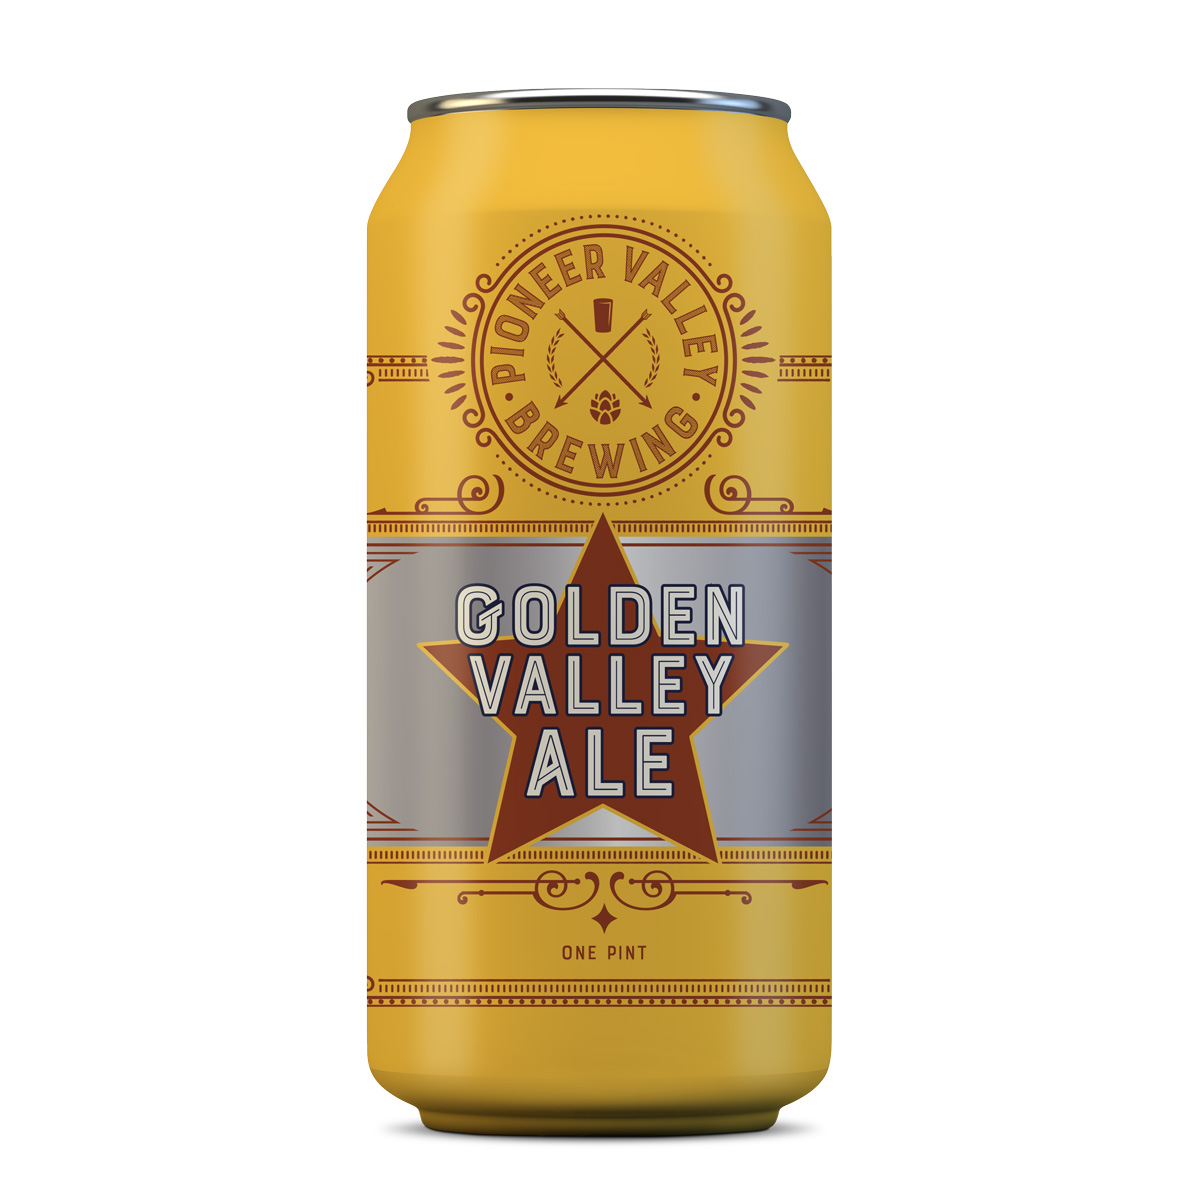 Golden Valley Ale | Pioneer Valley Brewery